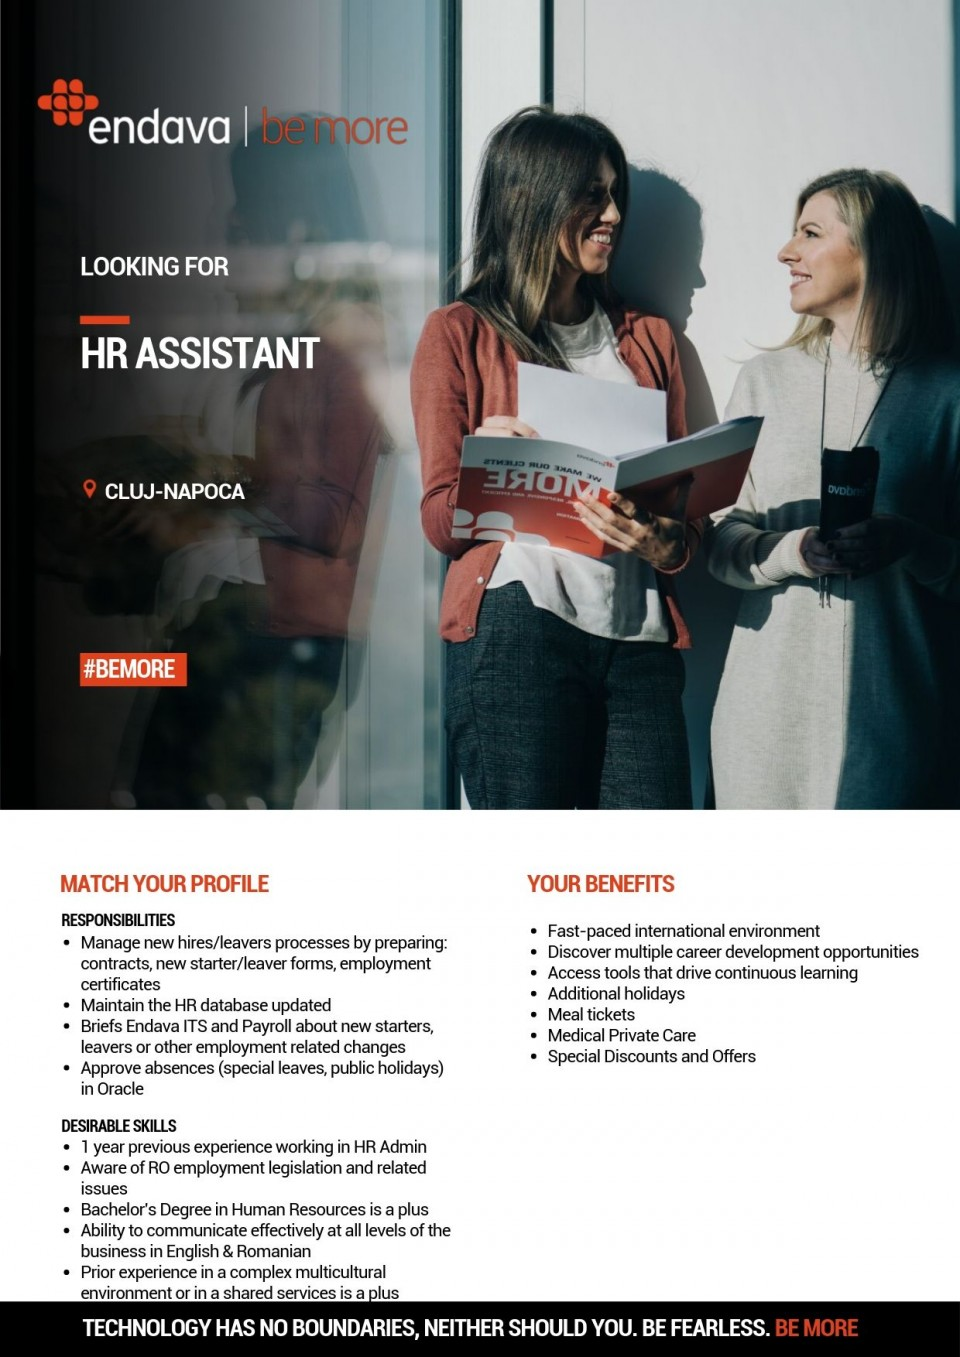 1 year previous experience working in HR Admin Aware of RO employment legislation and related issues Bachelor's Degree in Human Resources is a plus Very well organized and good time manager Ability to communicate effectively at all levels of the business in English & Romanian Prior experience in a complex multicultural environment or in a shared services is a plus  Manage new hires/leavers processes by preparing: contracts, new starter/leaver forms, employment certificates Maintain the HR database updated Register work contracts, addendums and terminations into Revisal Briefs Endava ITS and Payroll about new starters, leavers or other employment related changes Approve absences (special leaves, public holidays) in Oracle Assist with the day-to-day efficient operation of the HR Team   Endava is a global technology company, with over 18 years of experience of working with some of the world's leading Finance, Insurance, Telecommunications, Media, Technology, and Retail companies. Through the Digital Evolution, Agile Transformation and Automation solutions, Endava is helping clients be more engaging, responsive and efficient. Endava has over 5,500 employees located in offices in North America and Western Europe and delivery centres in Colombia, Moldova, Romania, Macedonia, Serbia and Bulgaria.Along with investing in long term customer relationships, Endava recognized the importance of providing rewarding and challenging careers for people and, by doing so, has established itself as the employer of choice for the best and brightest engineers.